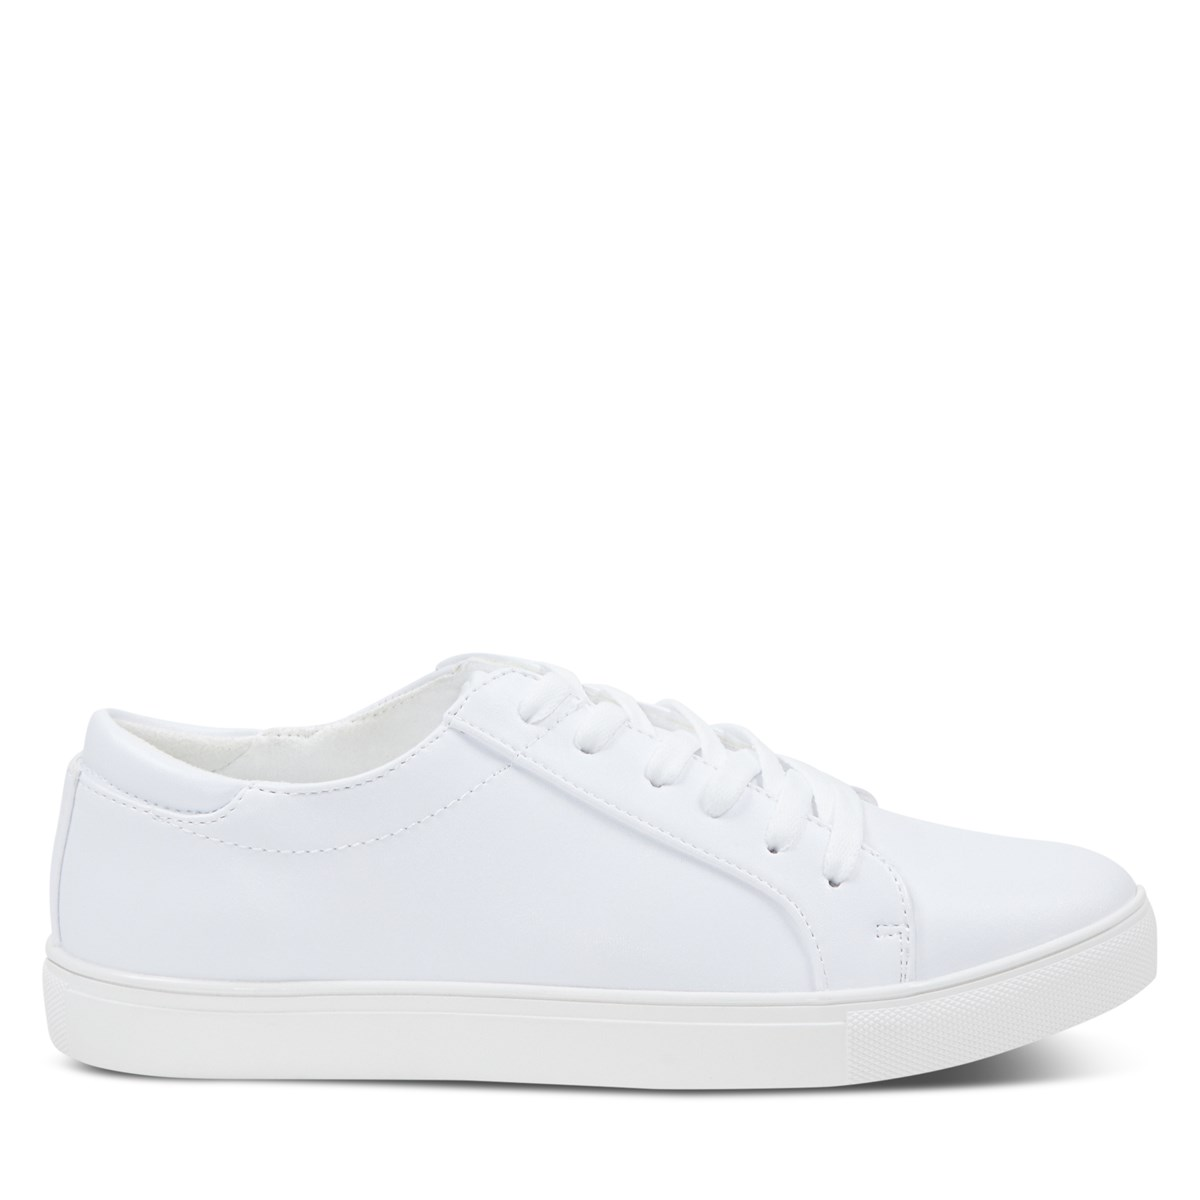 Men's KAM Sneakers in White